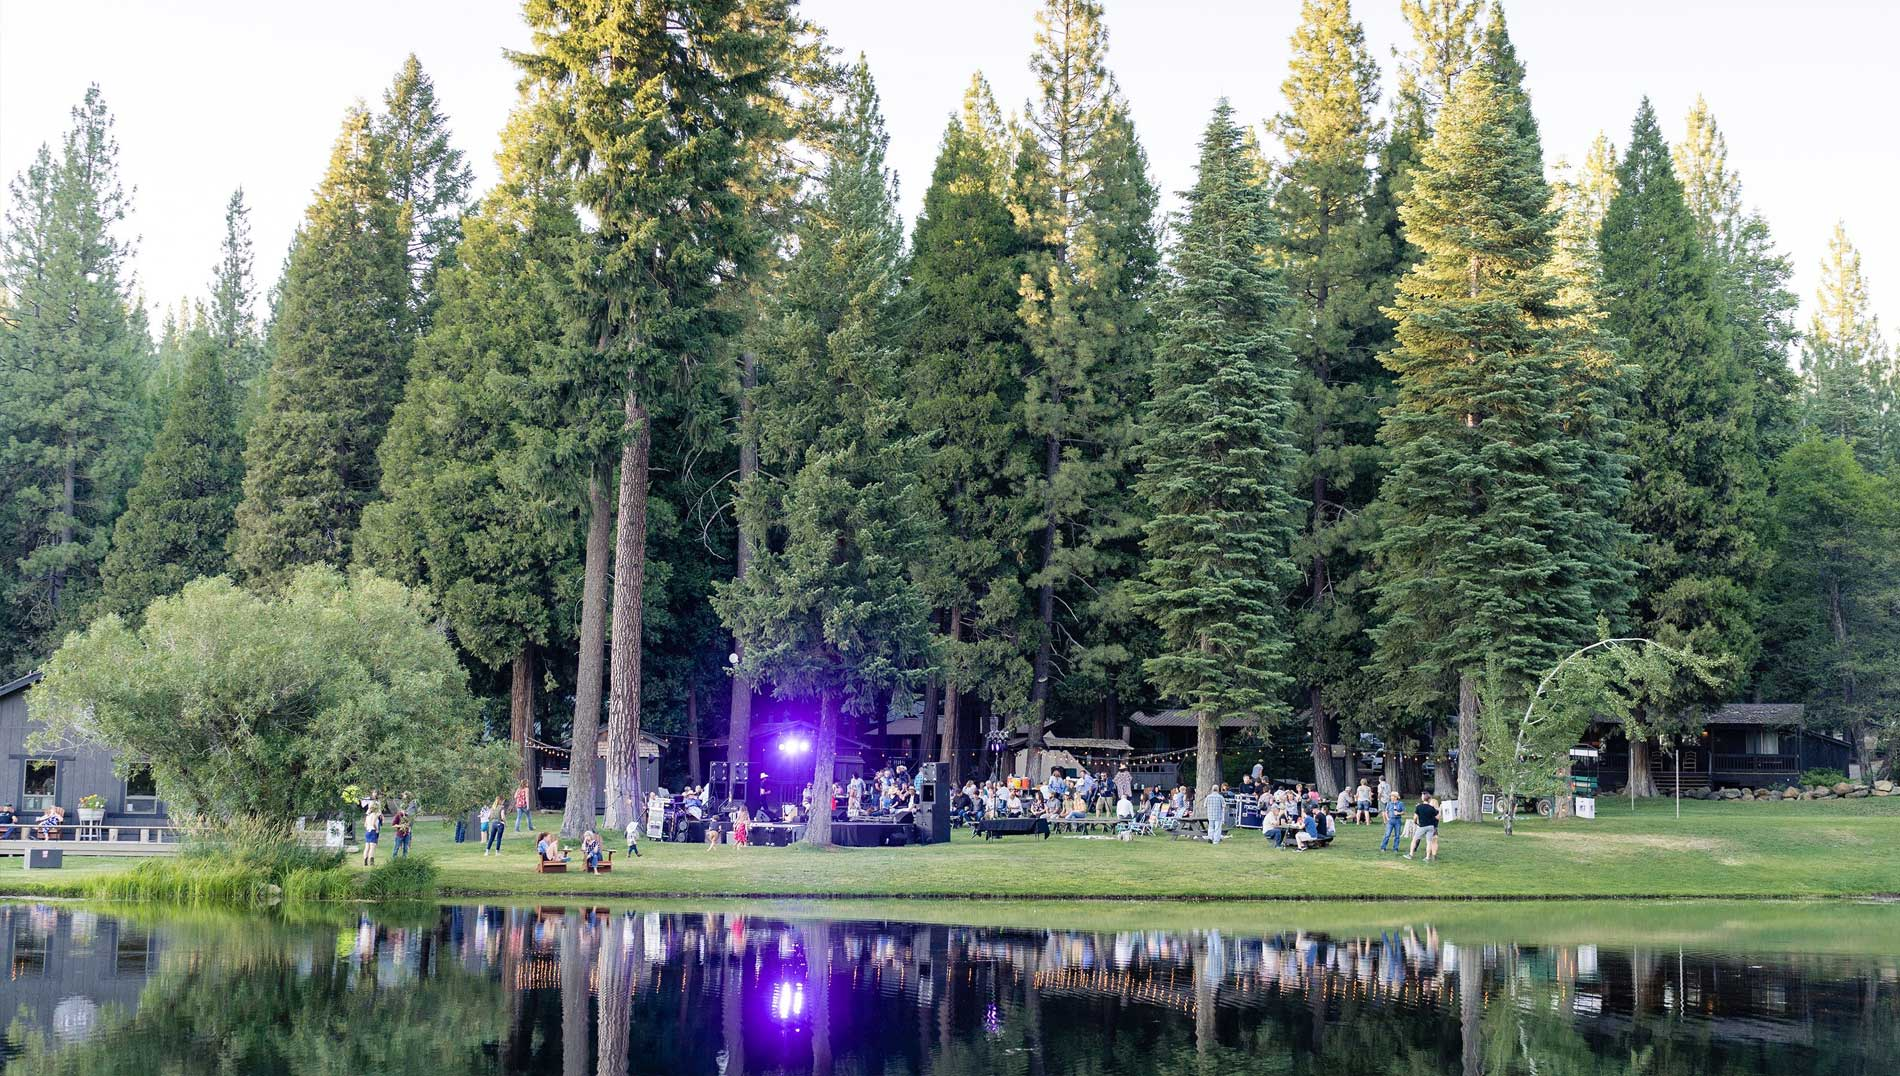 A large group of people dining at enjoying a concert by the lake at Greenhorn Ranch